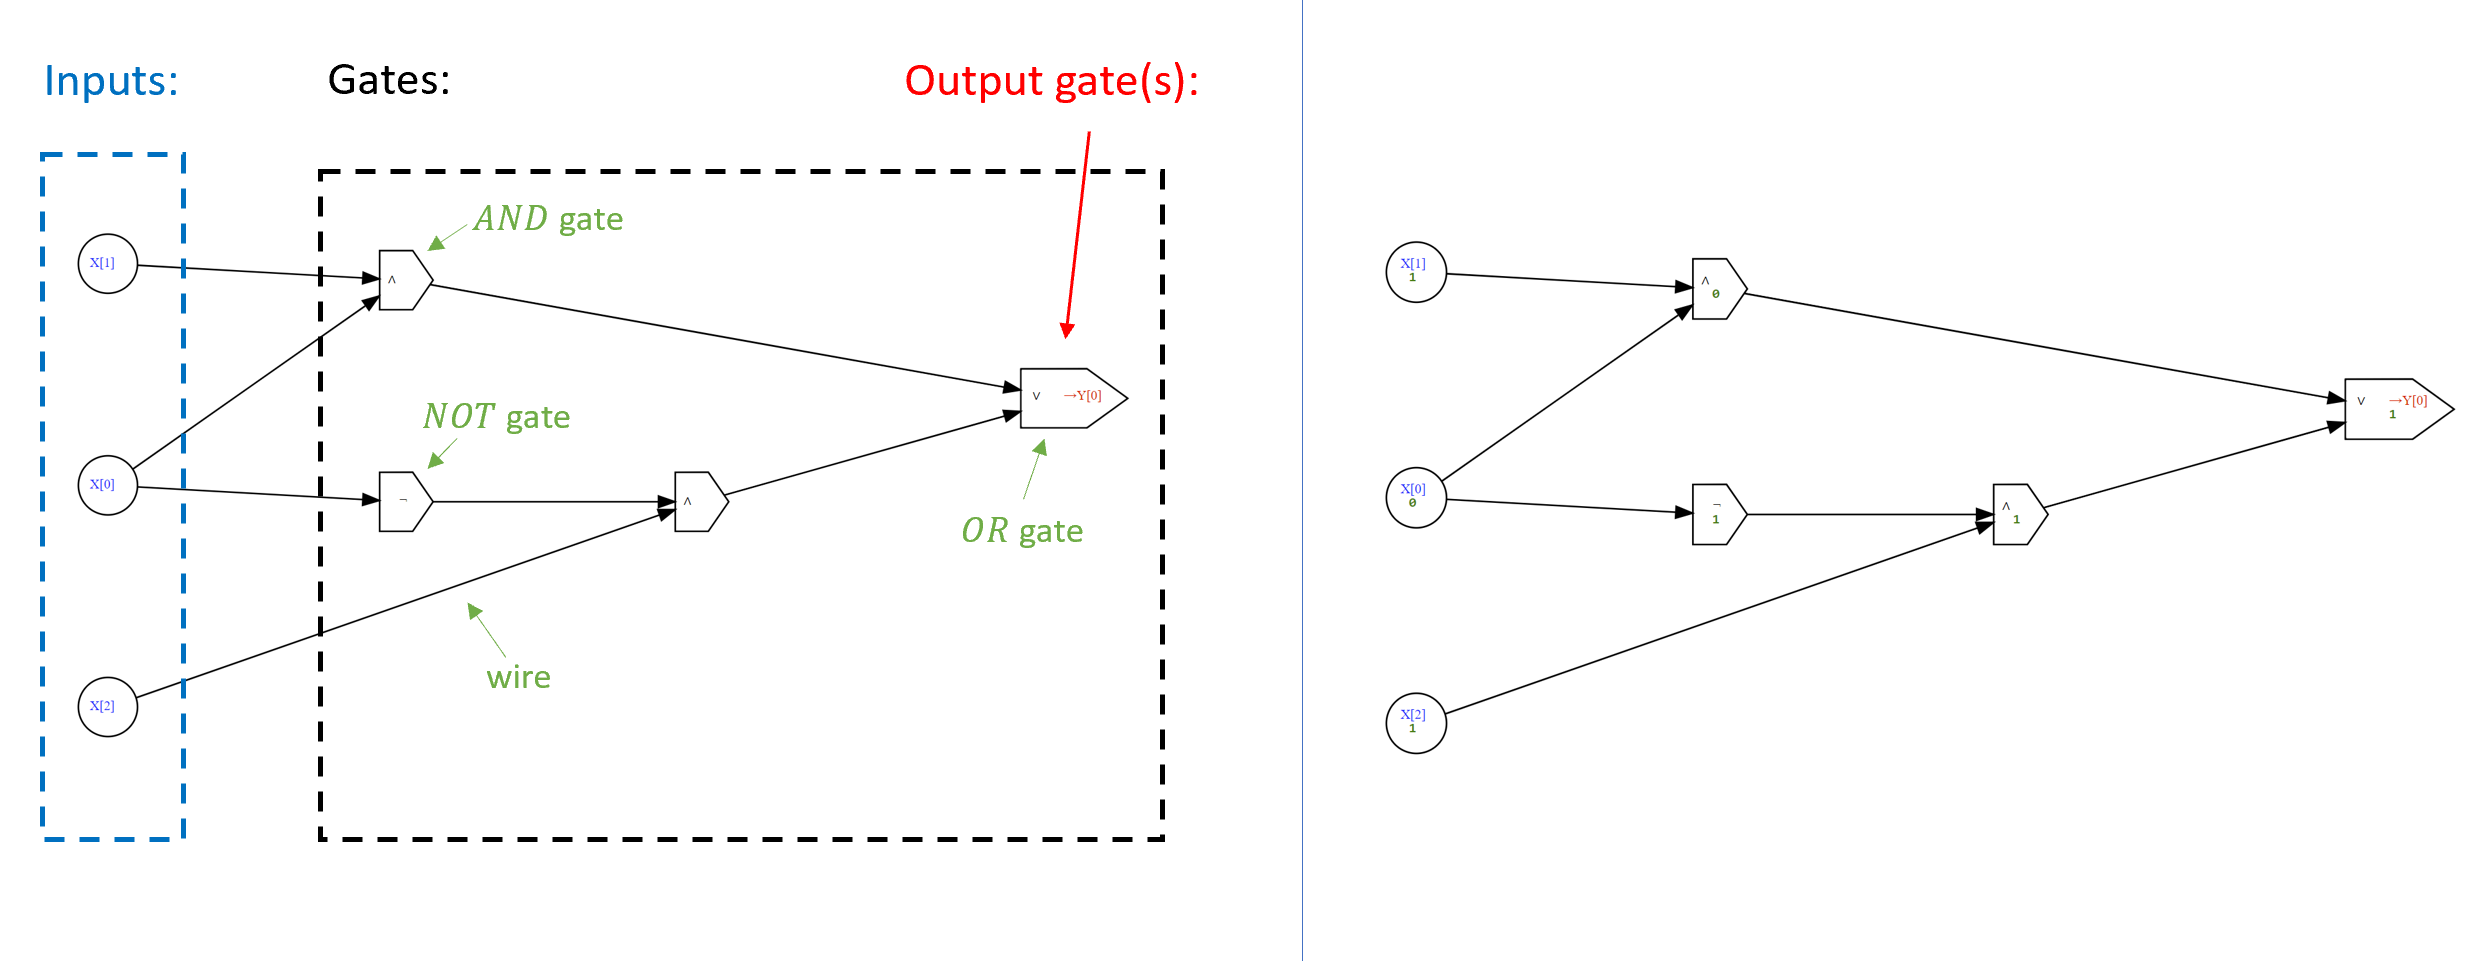 A Boolean Circuit consists of gates that are are connected by wires to one another and the inputs. The left-hand figure depicts a circuit with 3 inputs and 4 gates, one of which is designated the output gate. The right-hand figure depicts the evaluation of this circuit on the input 101. The value of every gate is obtained by applying the corresponding function (\ensuremath{\mathit{AND}}, \ensuremath{\mathit{OR}}, or \ensuremath{\mathit{NOT}}) to values on the wire(s) that enter it. The output of the circuit is the value of the output gate(s). In this case, the value is 1=\ensuremath{\mathit{OR}}(\ensuremath{\mathit{AND}}(1,0),\ensuremath{\mathit{AND}}(\ensuremath{\mathit{NOT}}(0),1)).